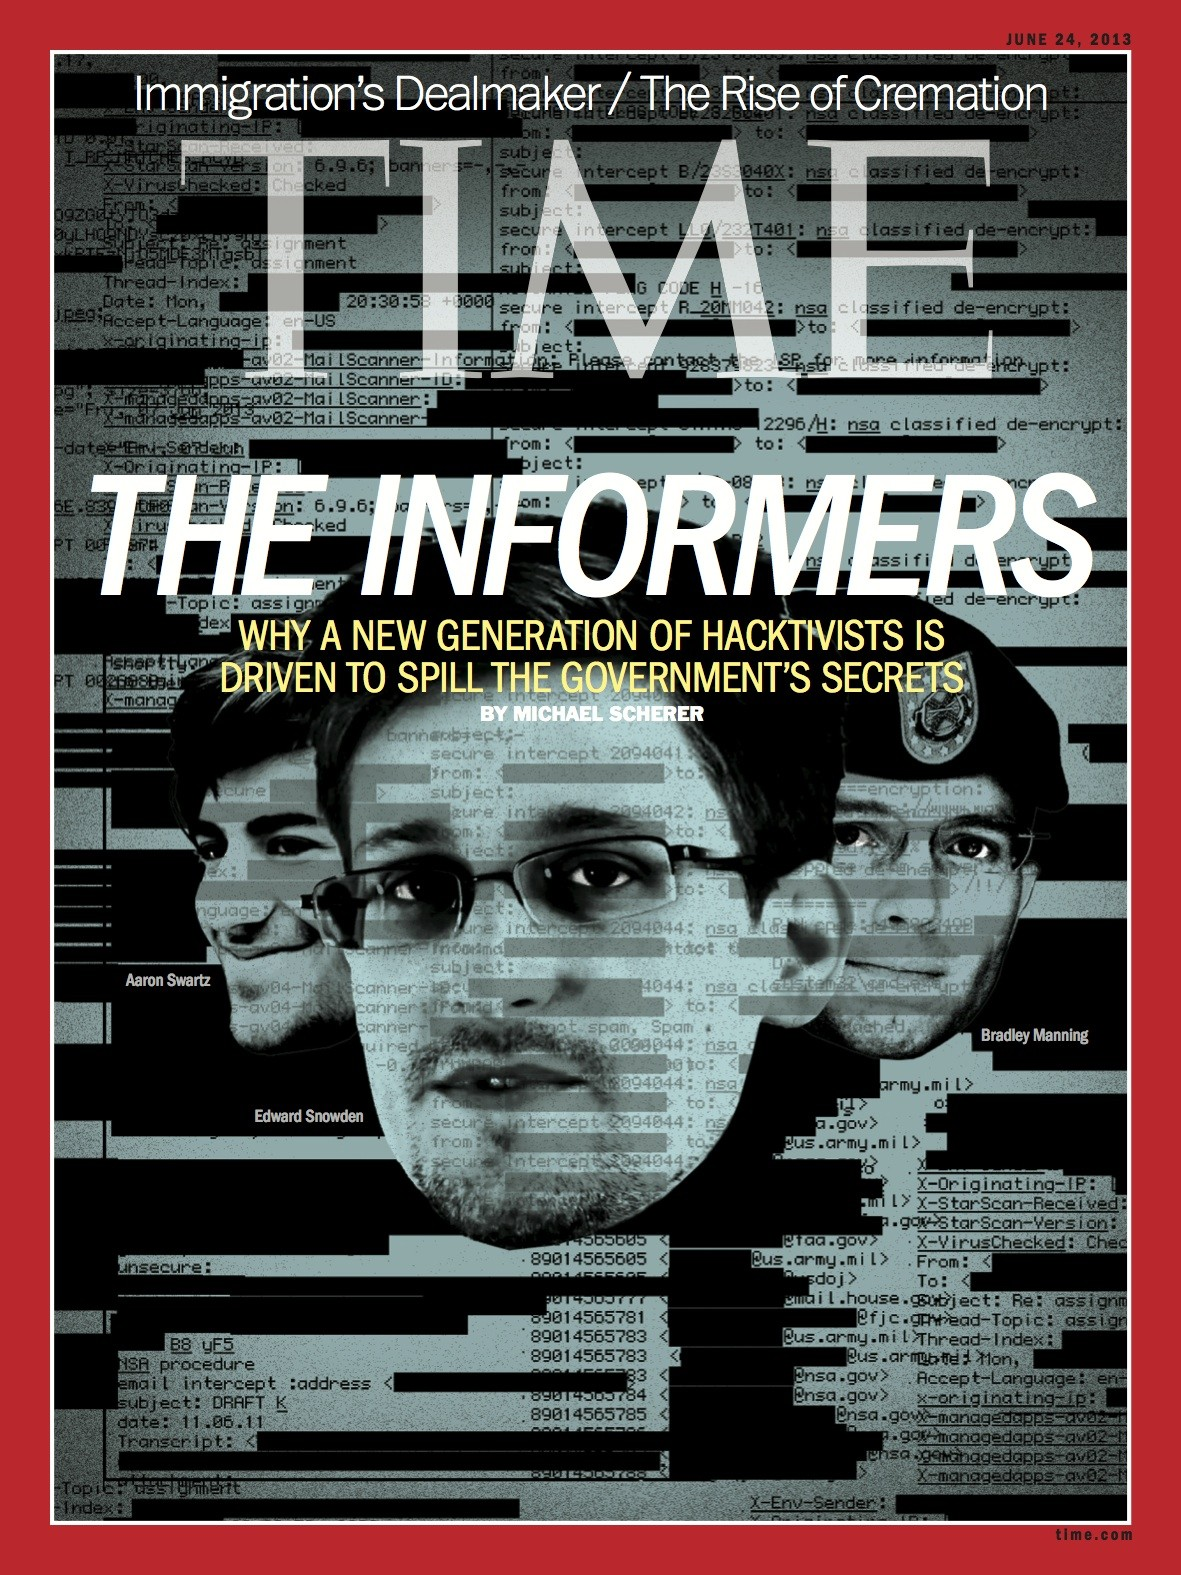 edward snowden covers time magazine 39 s latest issue photo huffpost. Black Bedroom Furniture Sets. Home Design Ideas